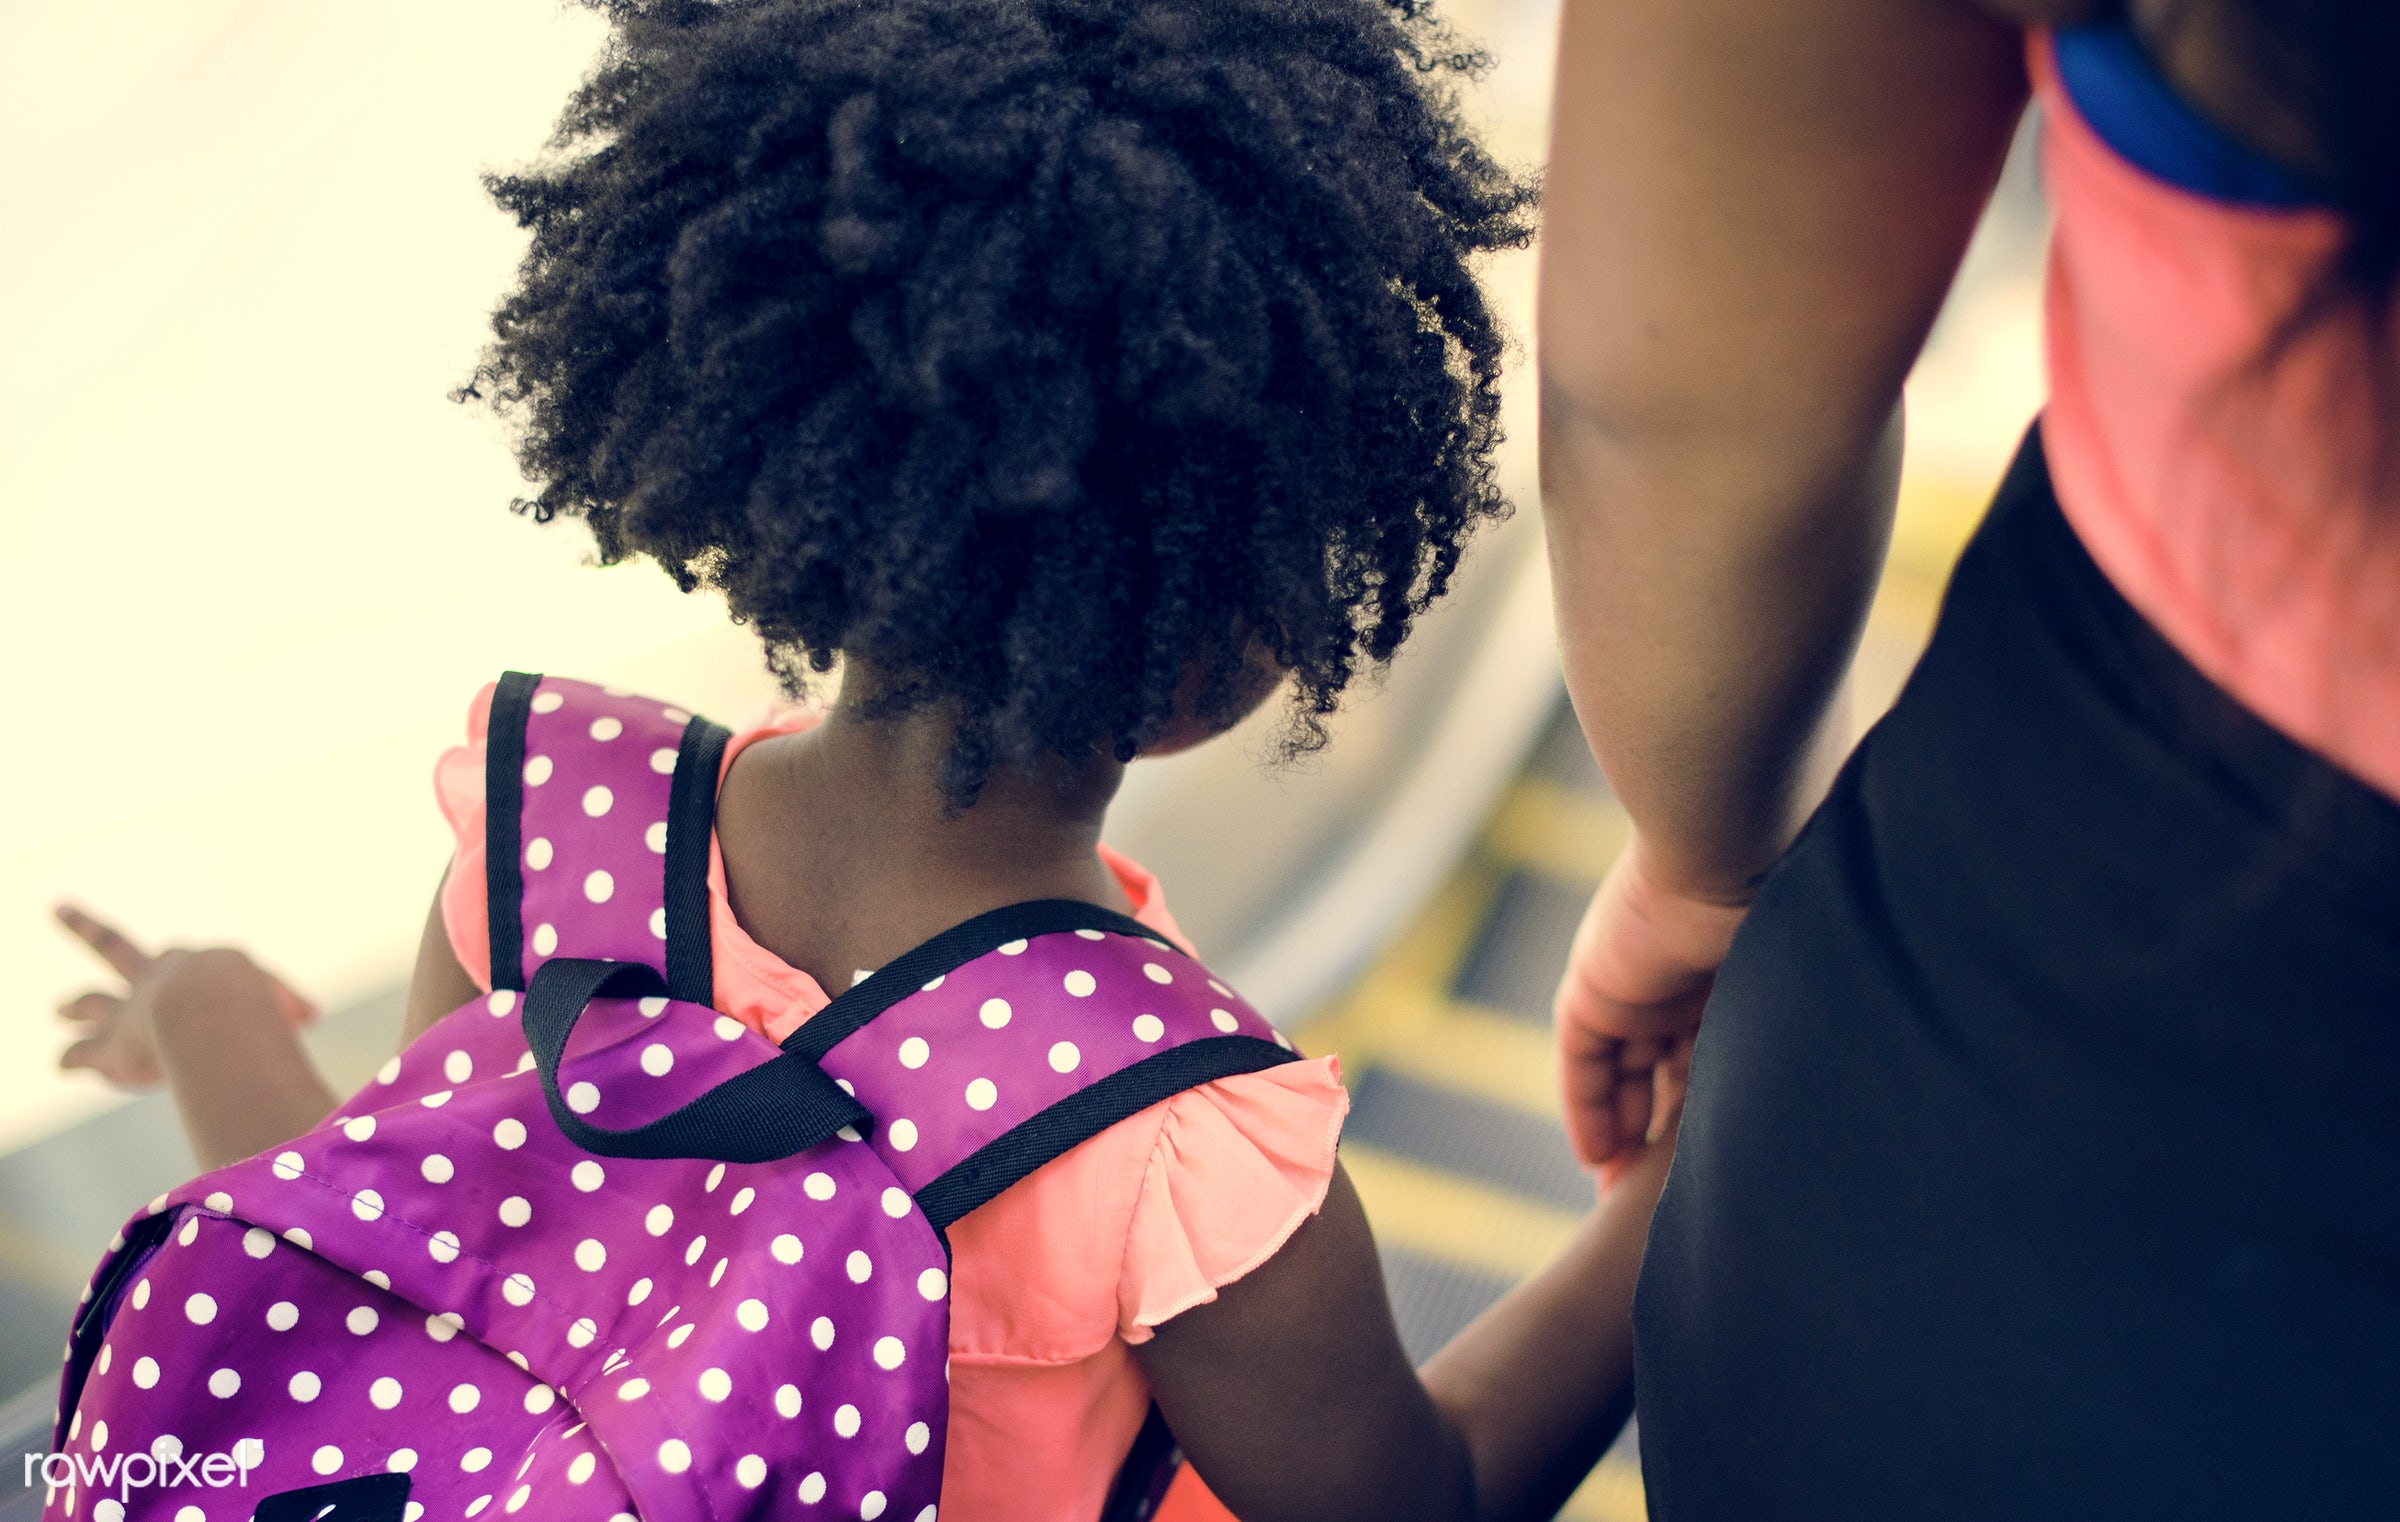 african, holding, children, people, together, kid, child, hand, girl, family, casual, backpack, childhood, generation,...